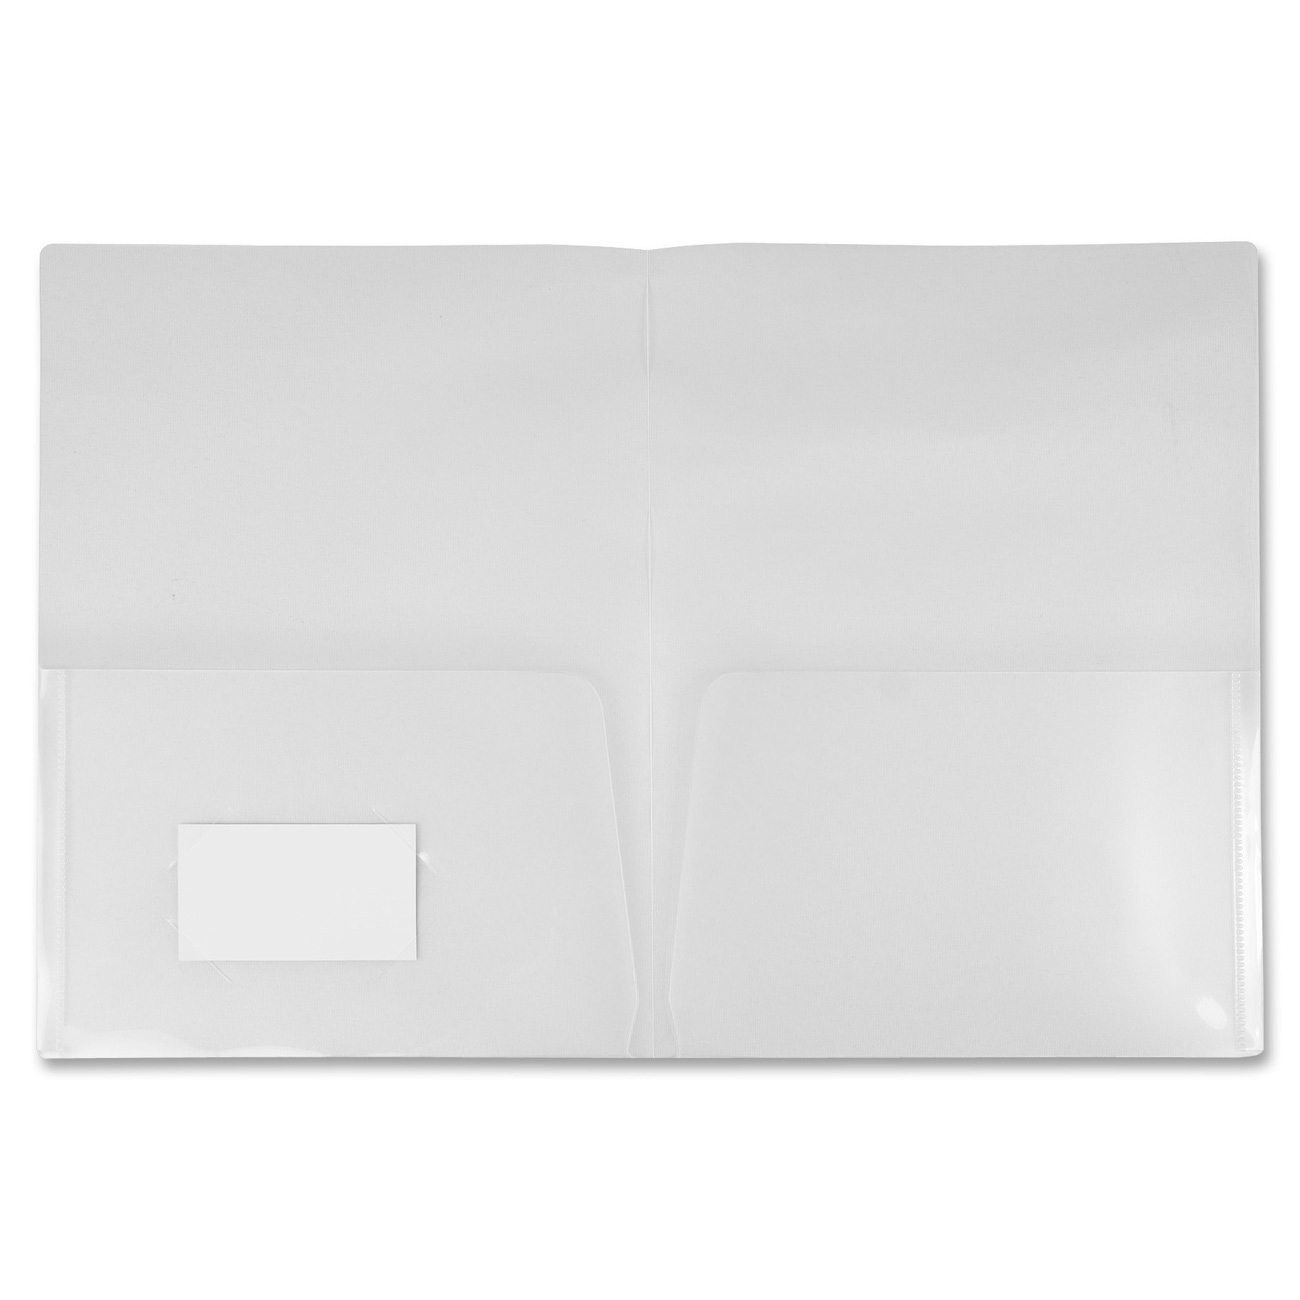 Winnable Two-Pocket Clear Poly Portfolio - Letter - 8 1/2